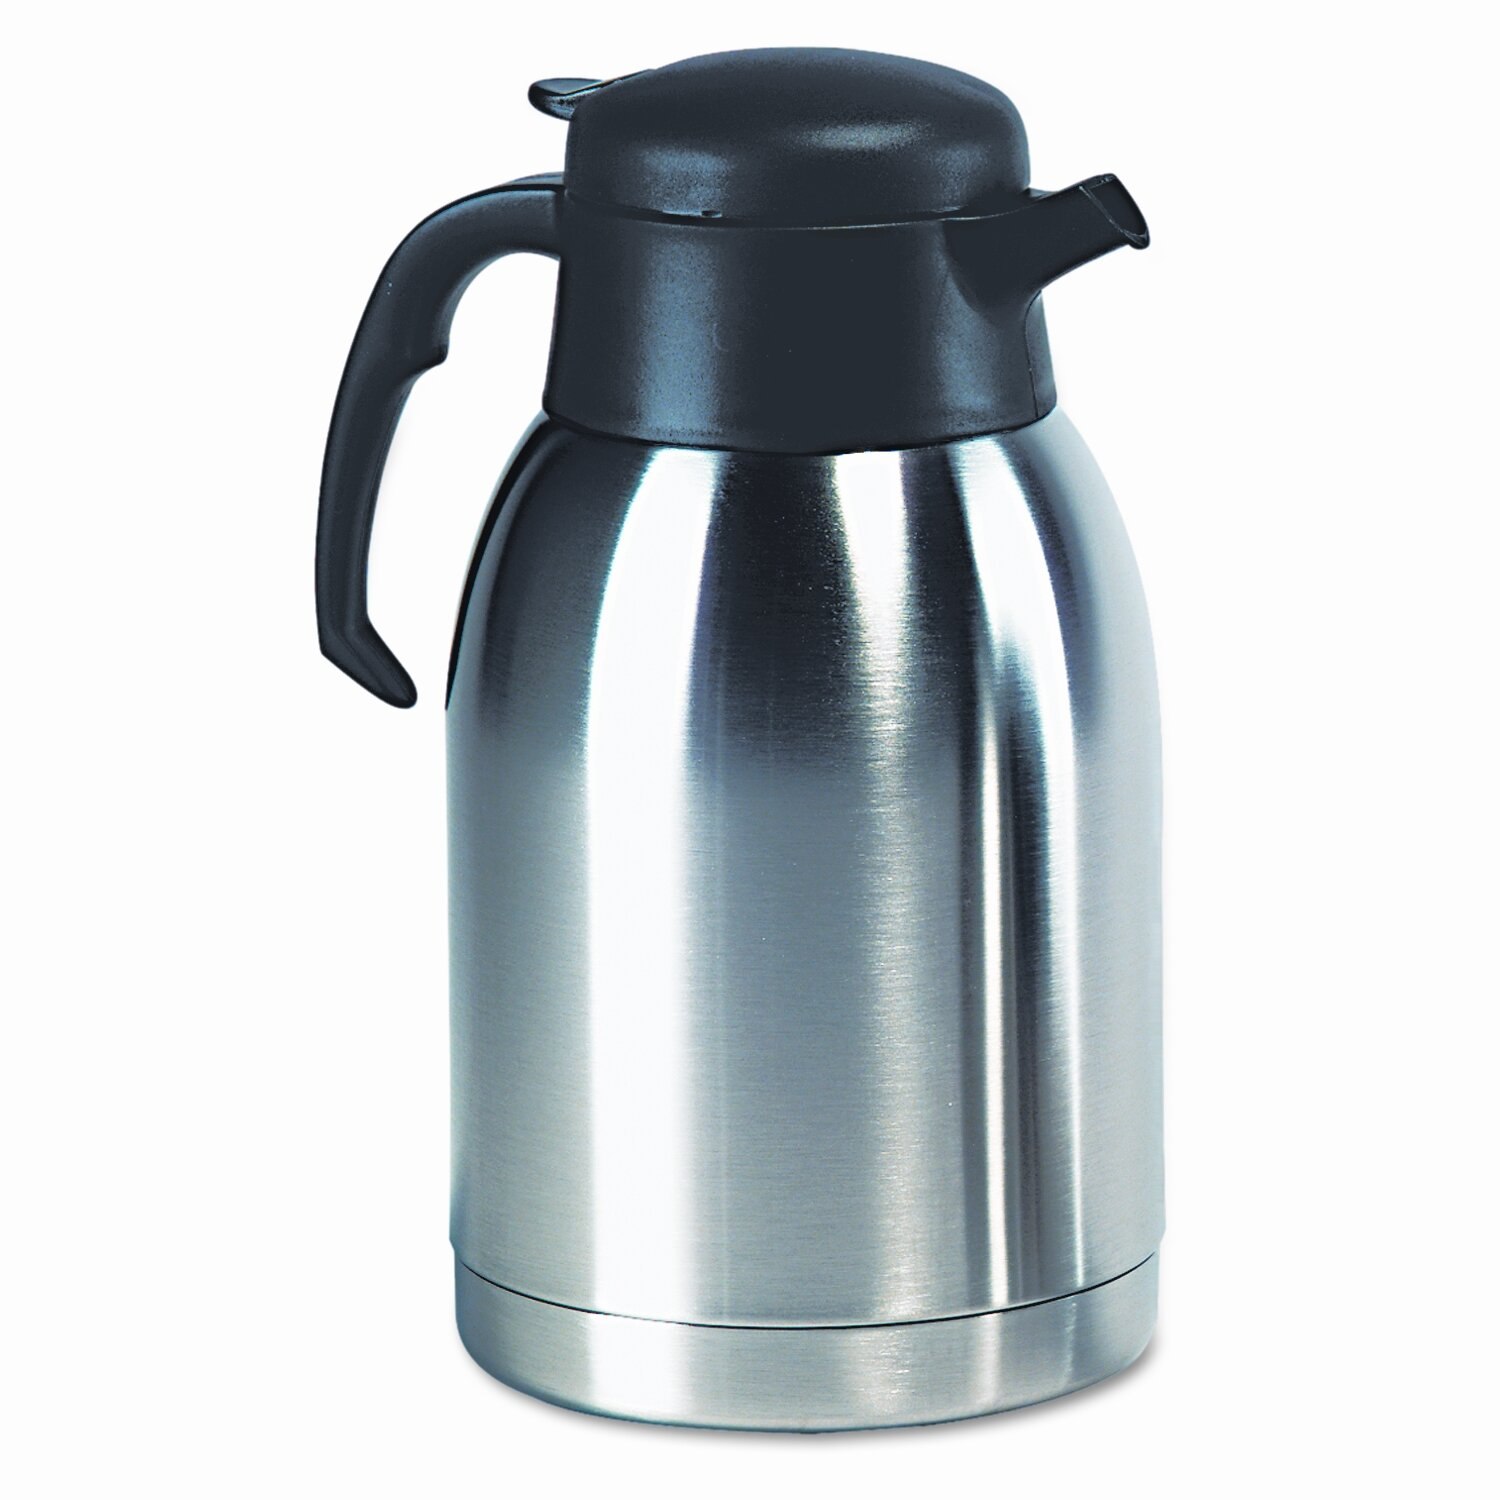 Stainless steel lined vacuum carafe 1 9 liter satin finish black trim wayfair - Carafe verre 2 litres ...